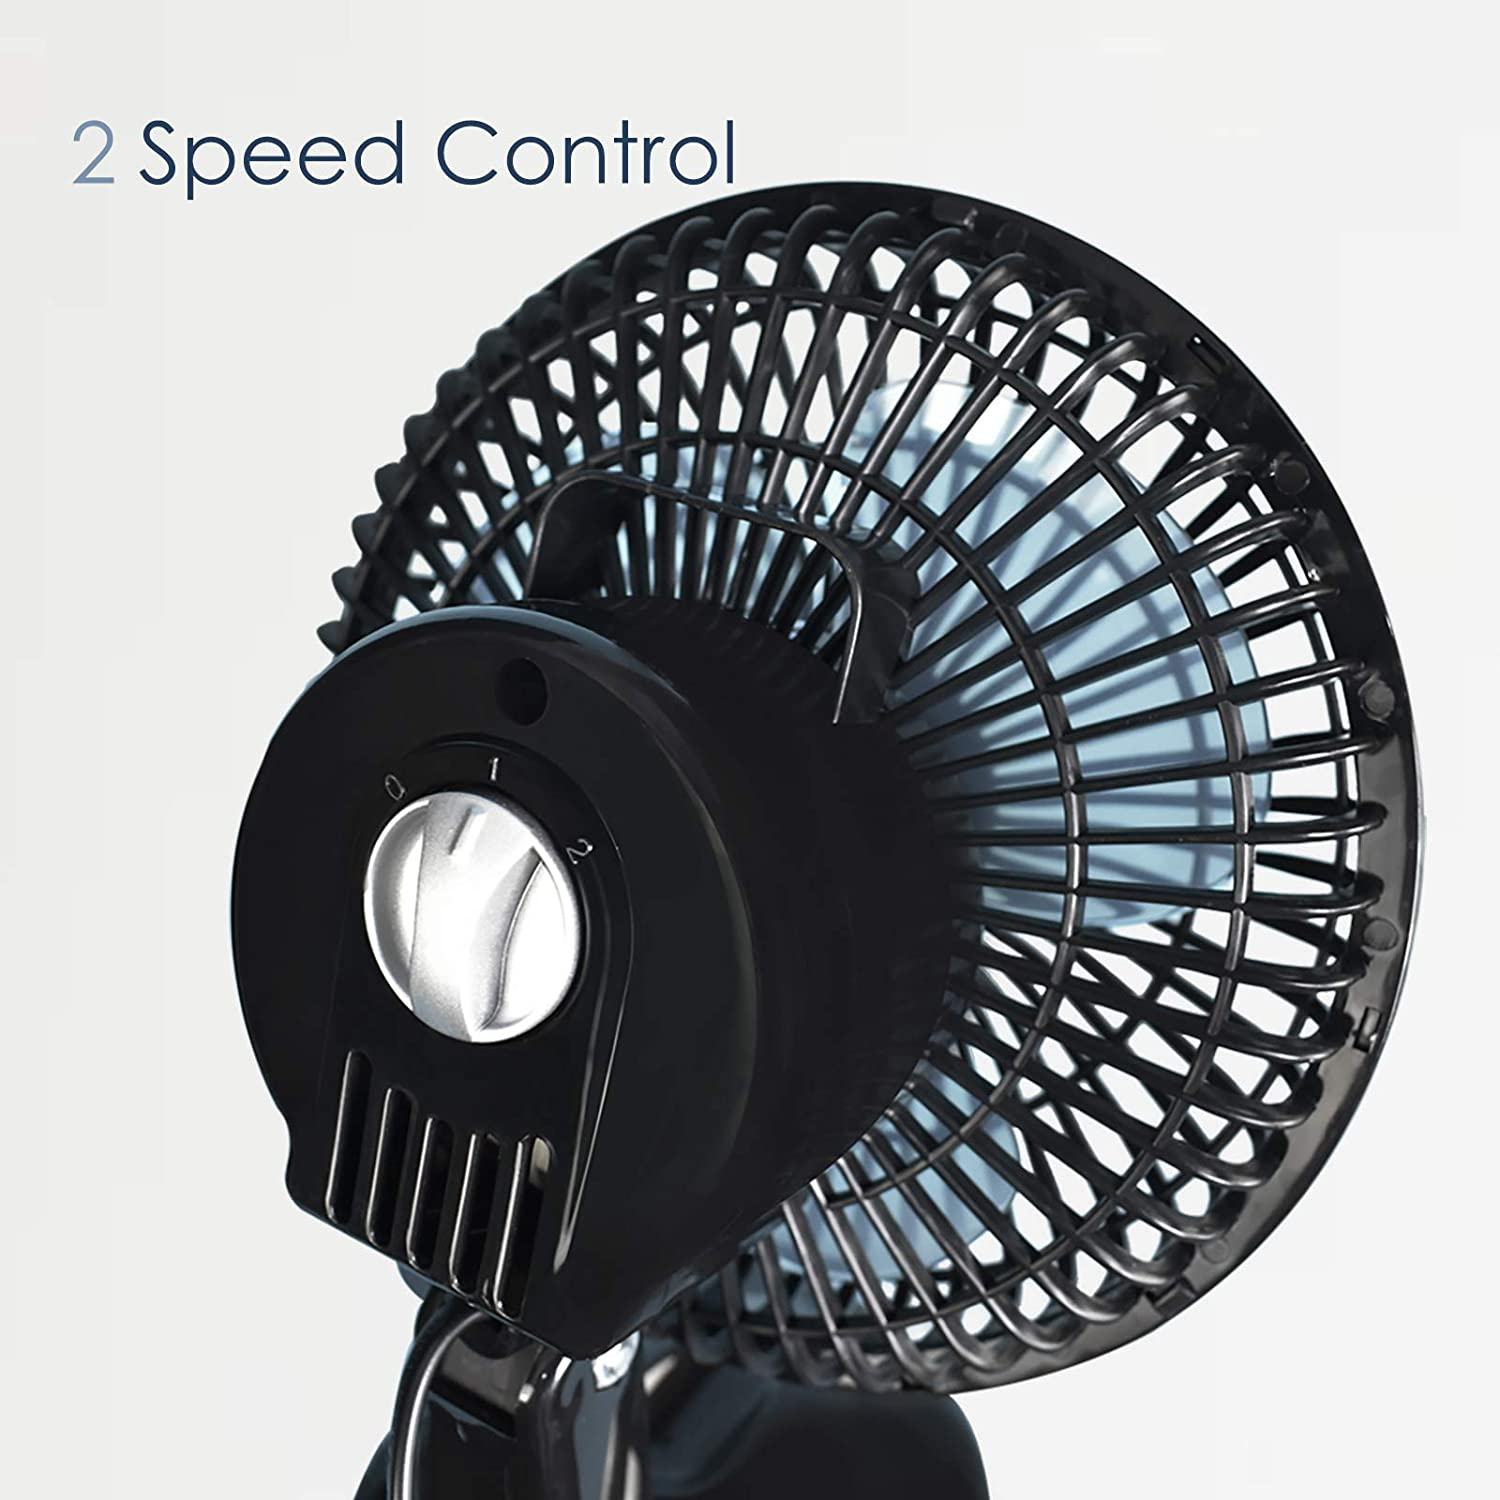 Black Quiet Operation 2 Speed Portable Air Cooling Fan Ideal for Home and Office AirArtDeco 6 Inch Personal Desk Fan